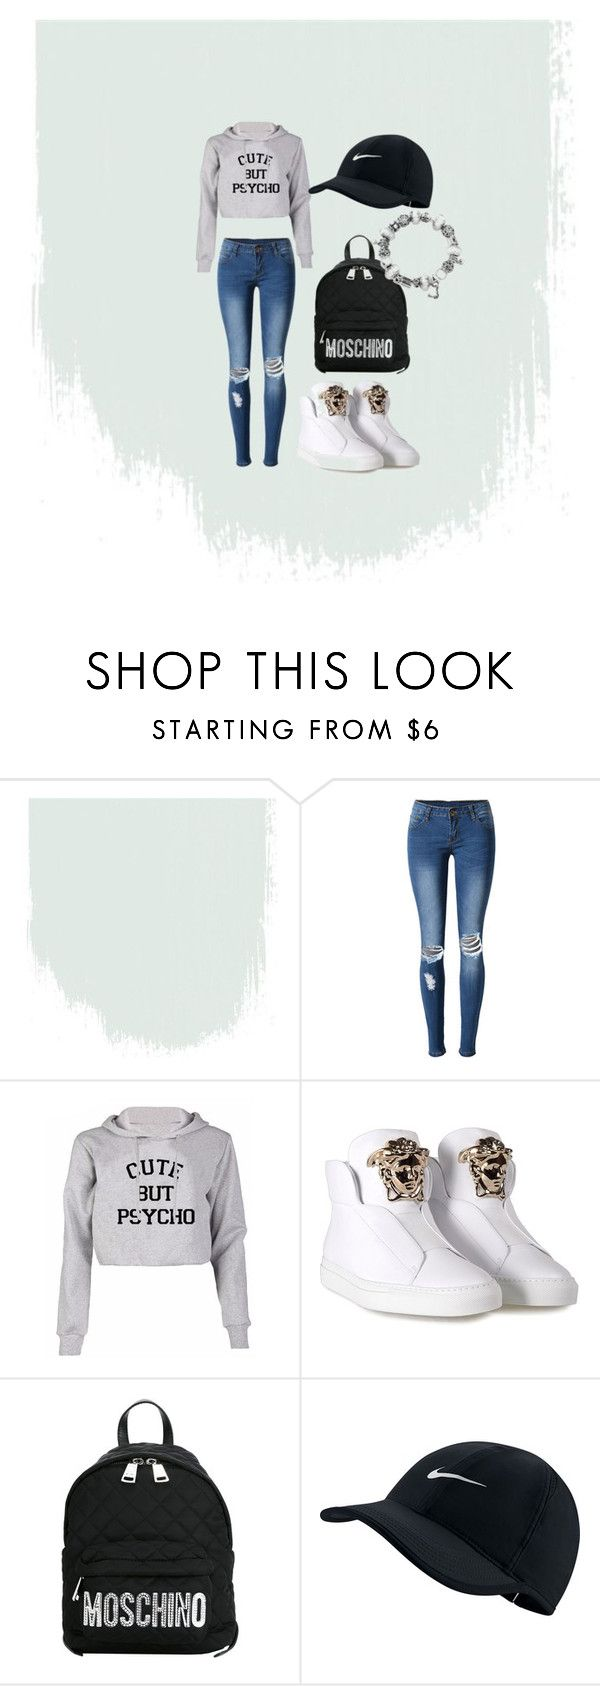 """7:41pm"" by kelsiecloe on Polyvore featuring WithChic, Versace, Moschino and NIKE"